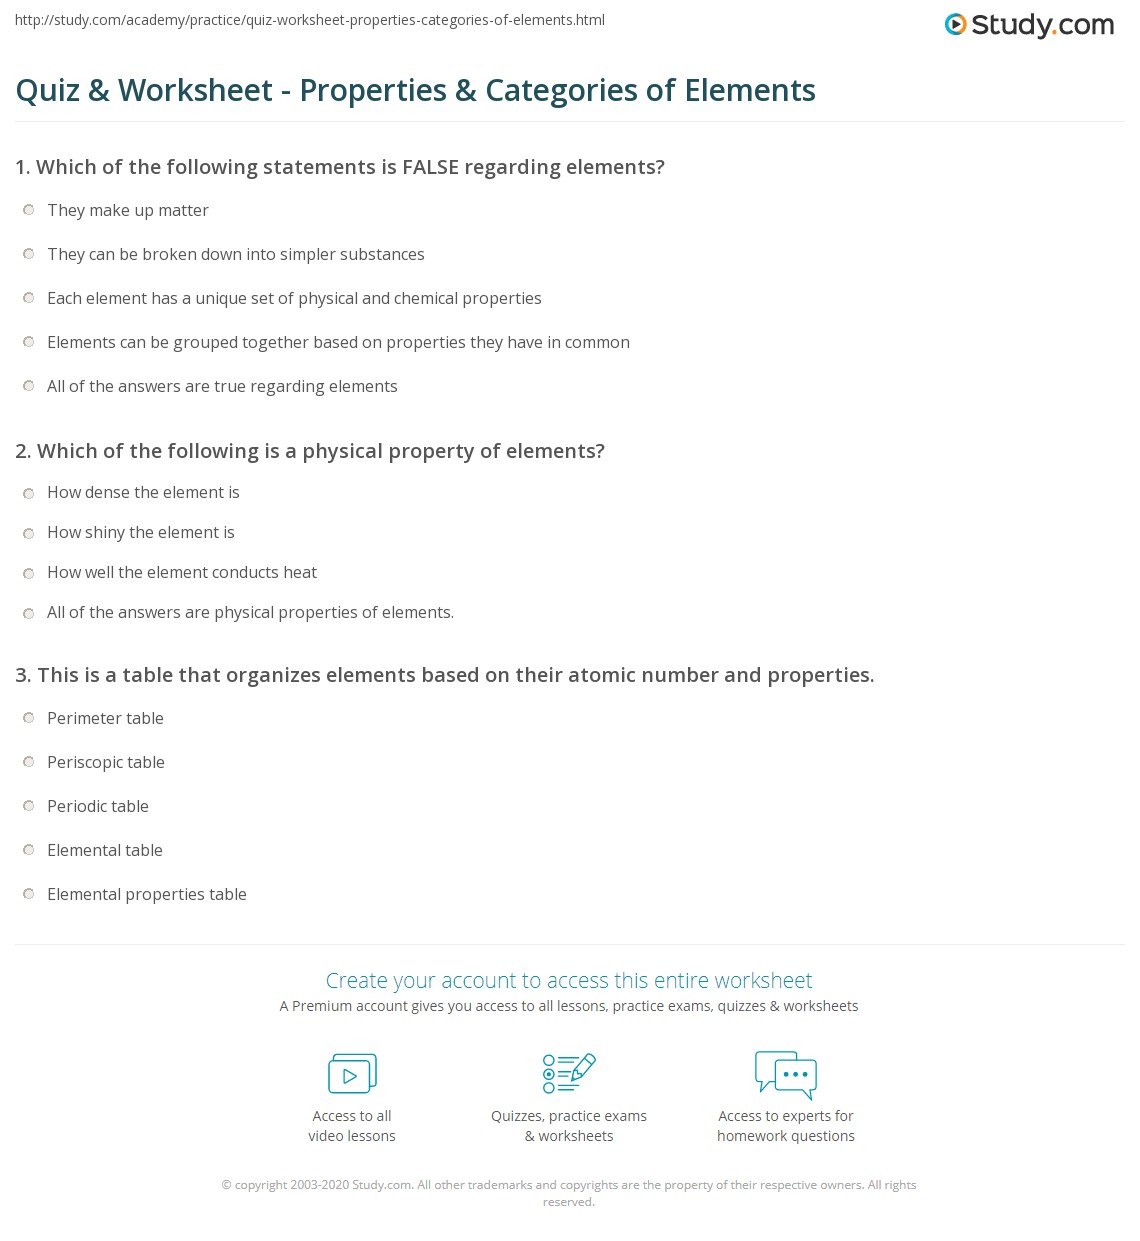 Elements Compounds And Mixtures Worksheet Answer Key 010 - Elements Compounds And Mixtures Worksheet Answer Key